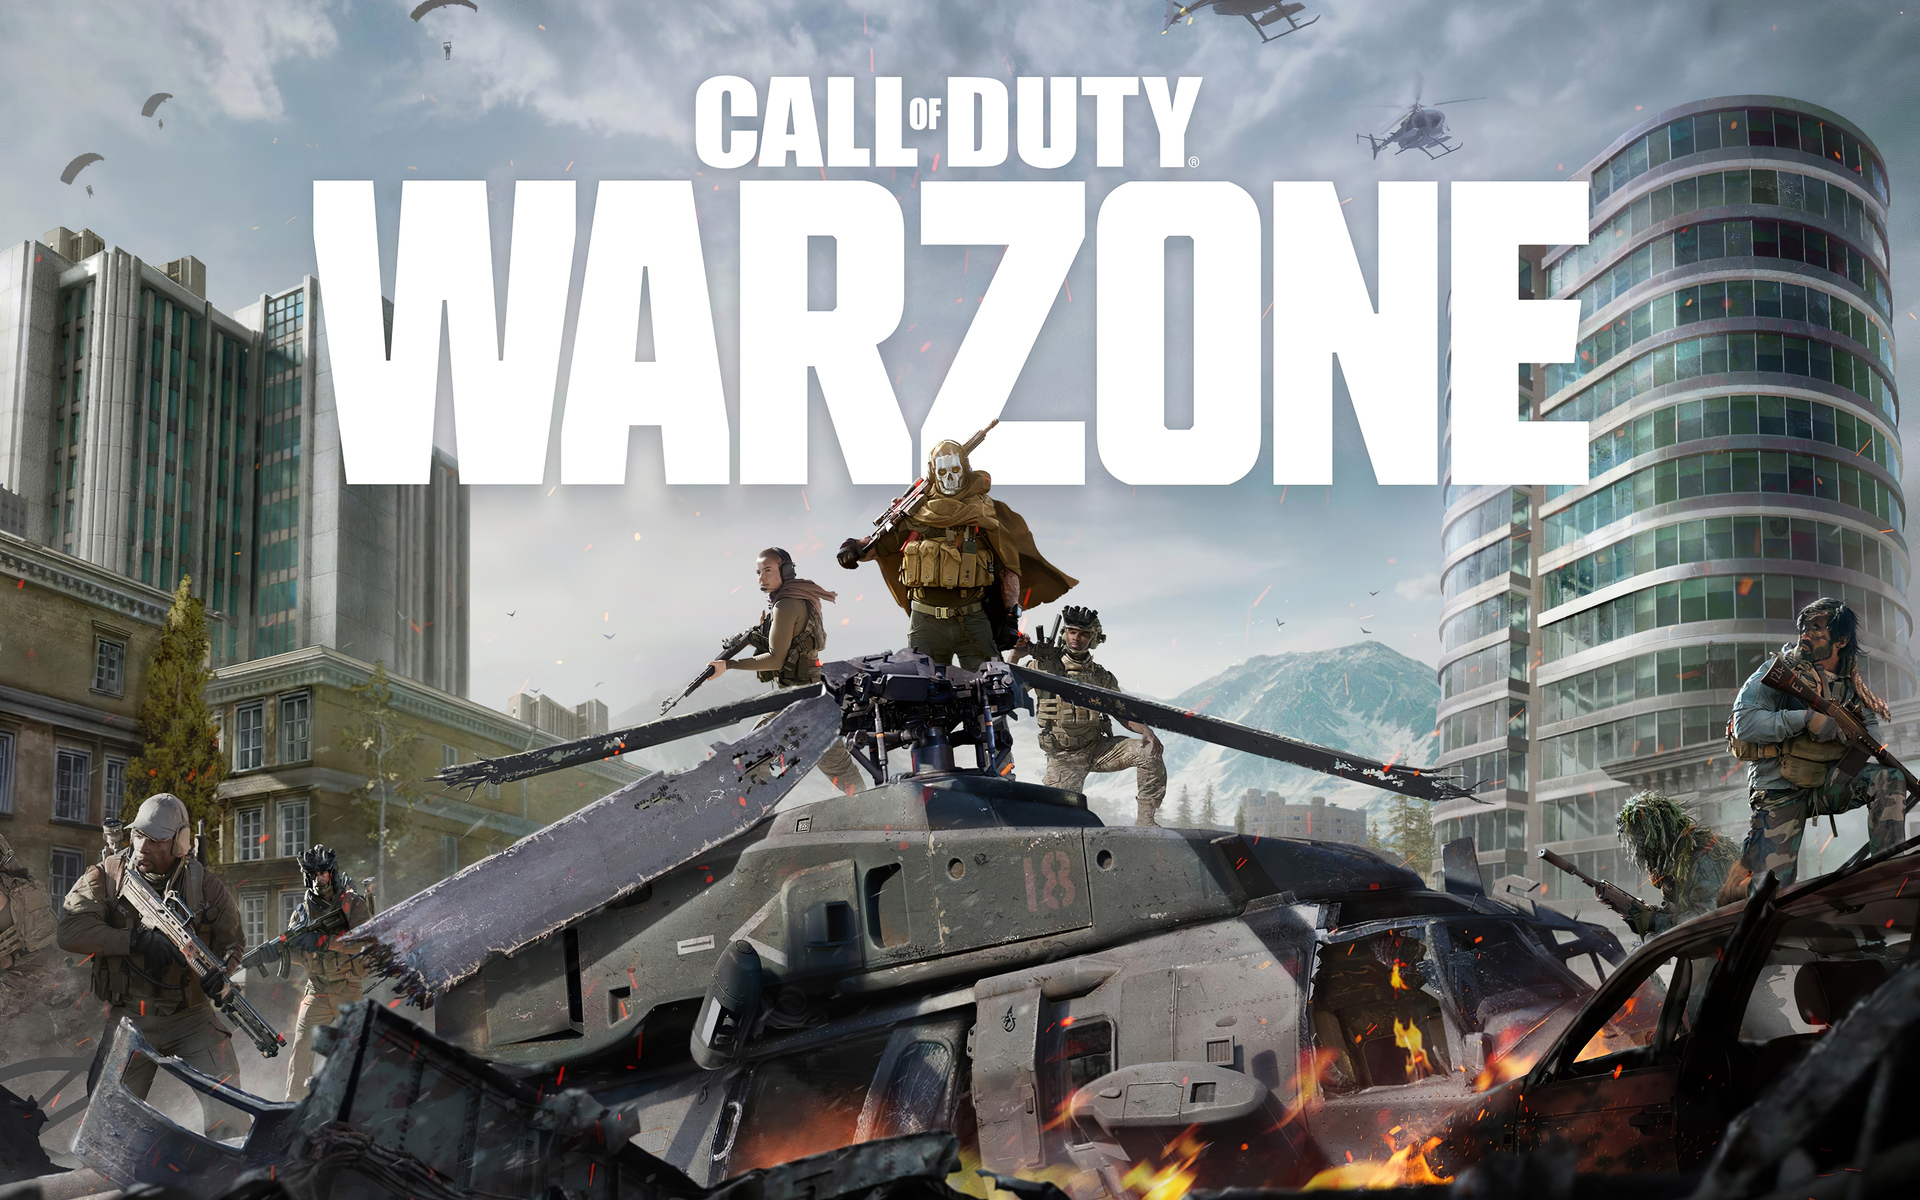 call-of-duty-warzone-fh.jpg